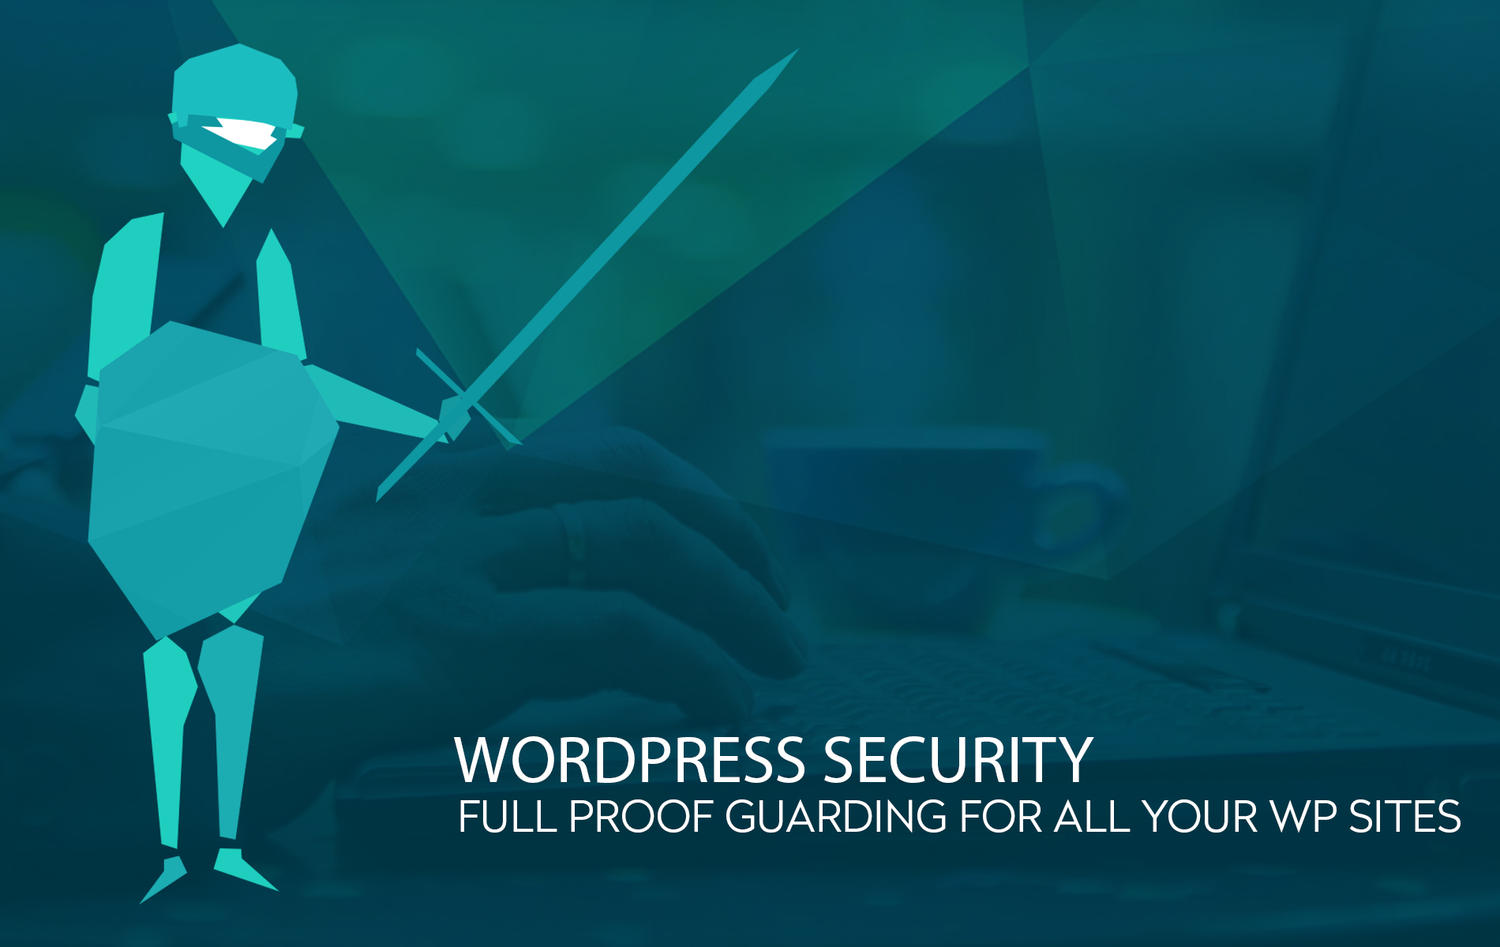 WordPress Security Diagnosis and Fix by samirkaila - 98476